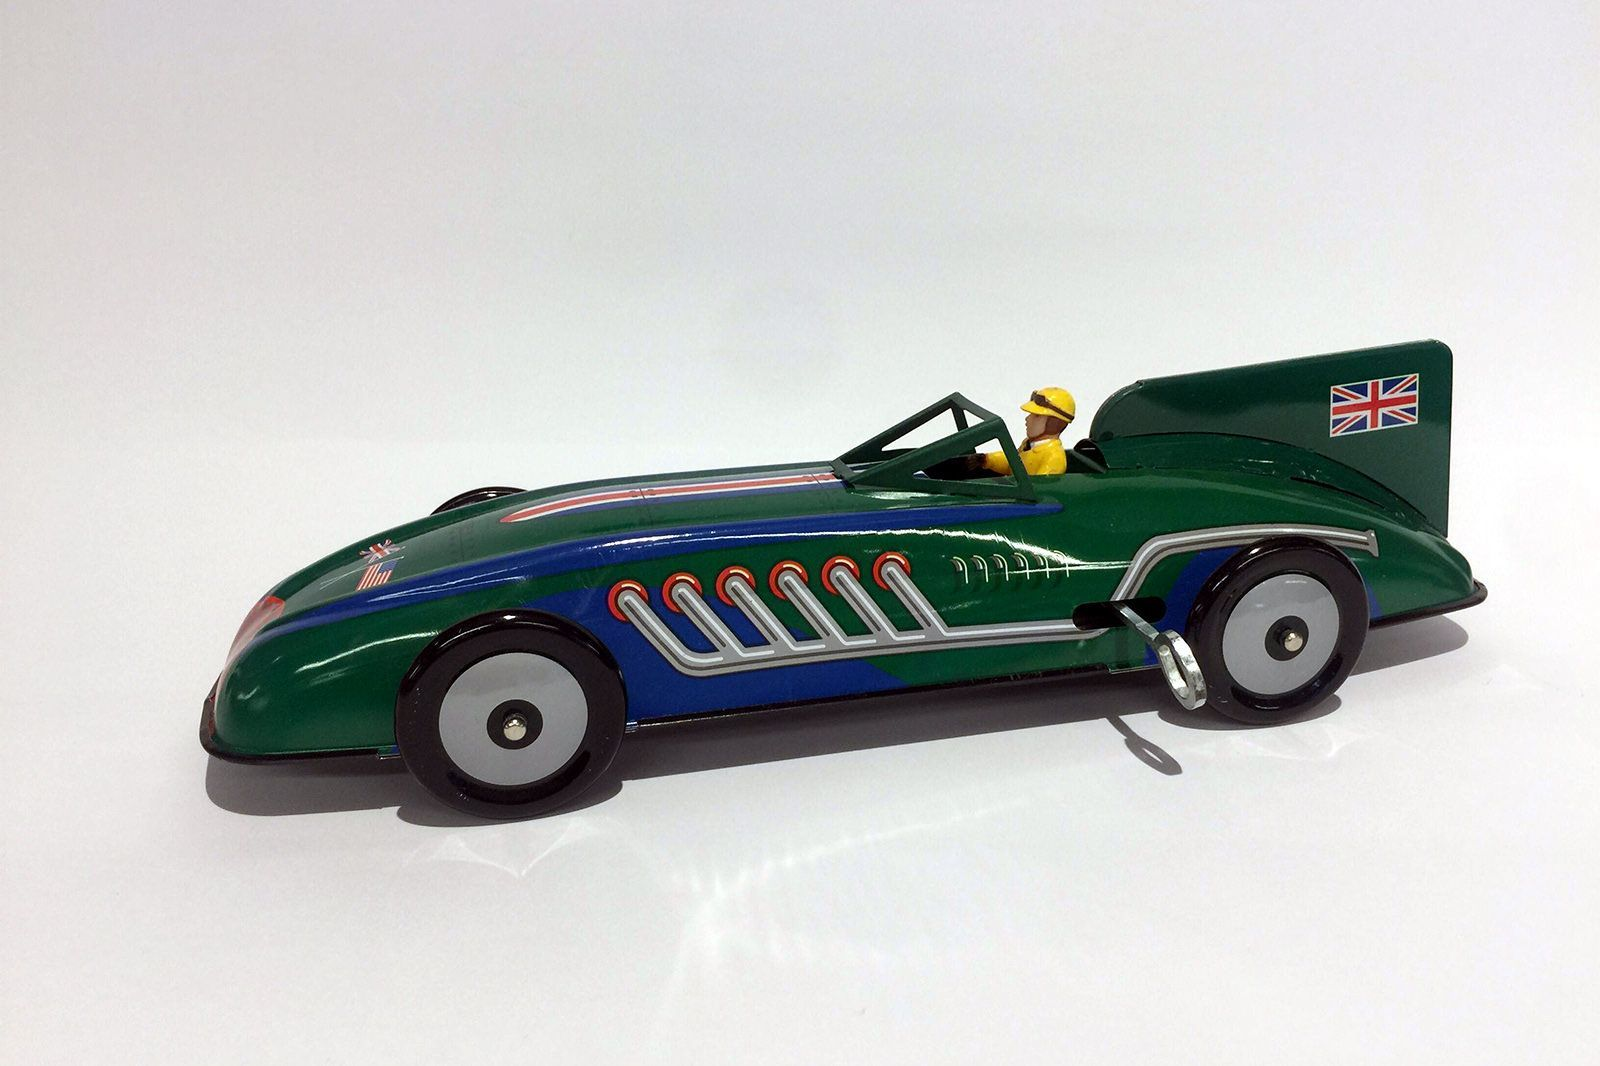 Model Tin Car Schylling Collector Series - British Record Racer